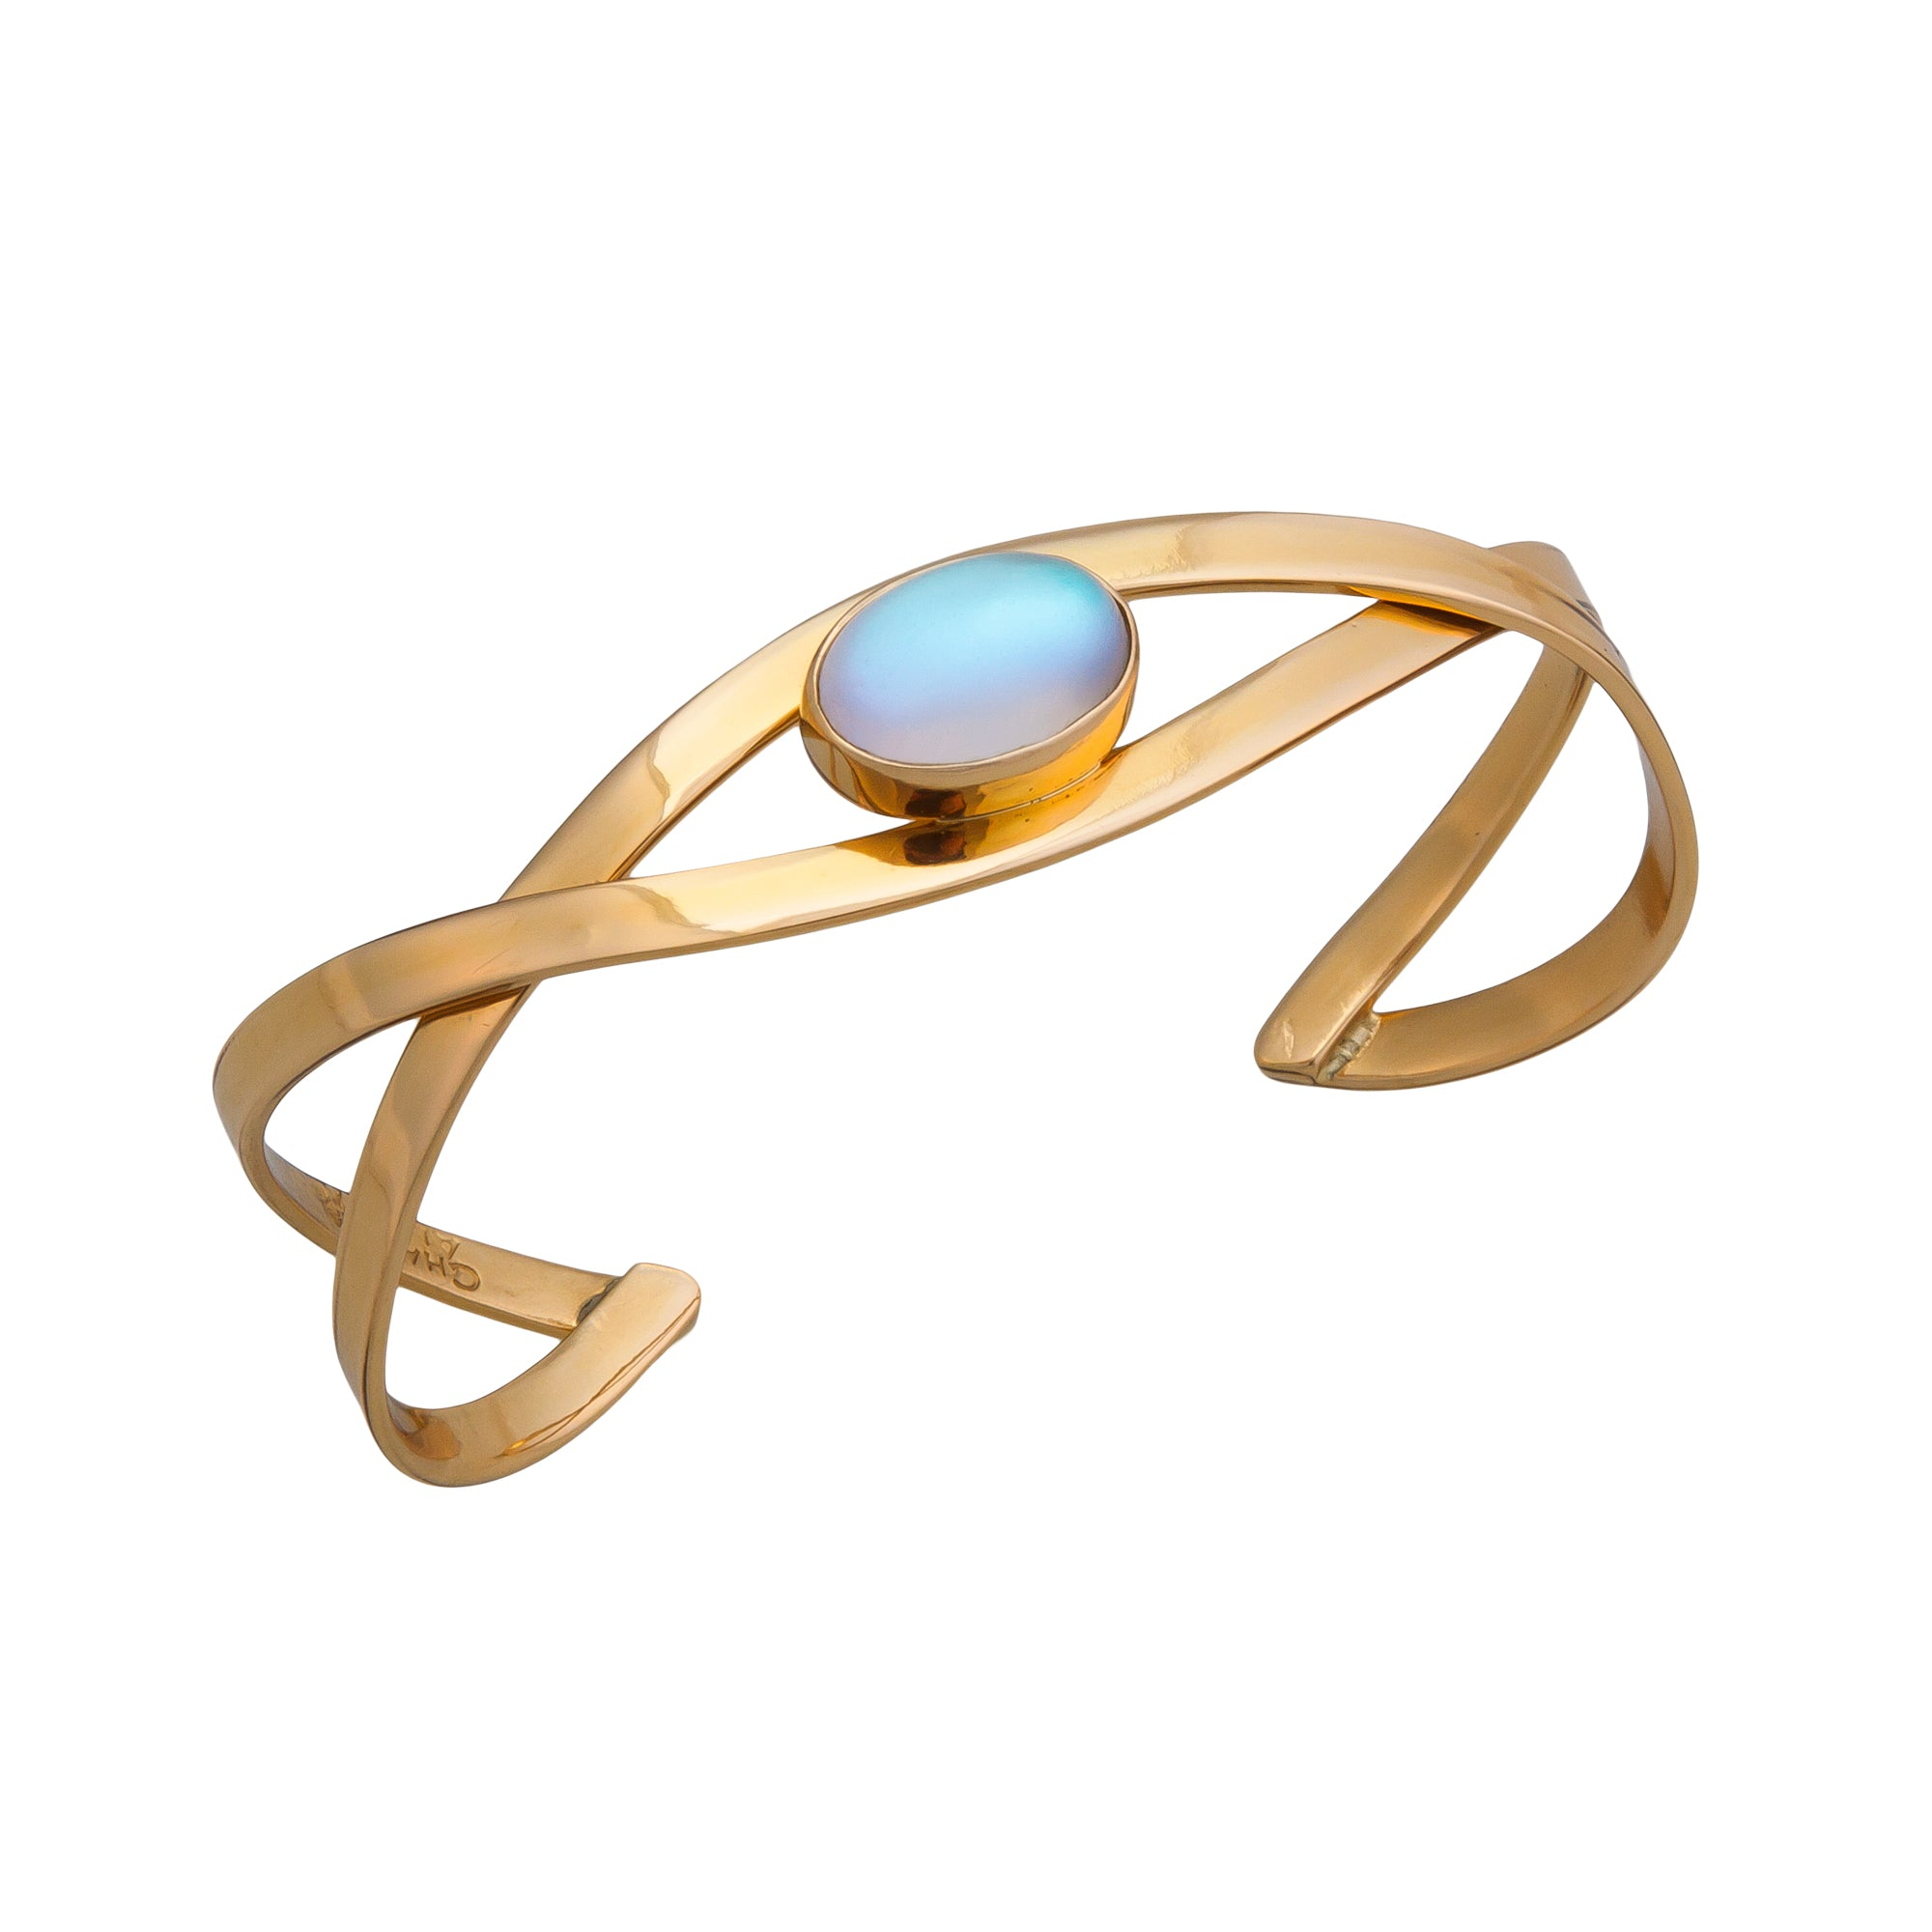 Alchemia Luminite Mini Infinity Cuff